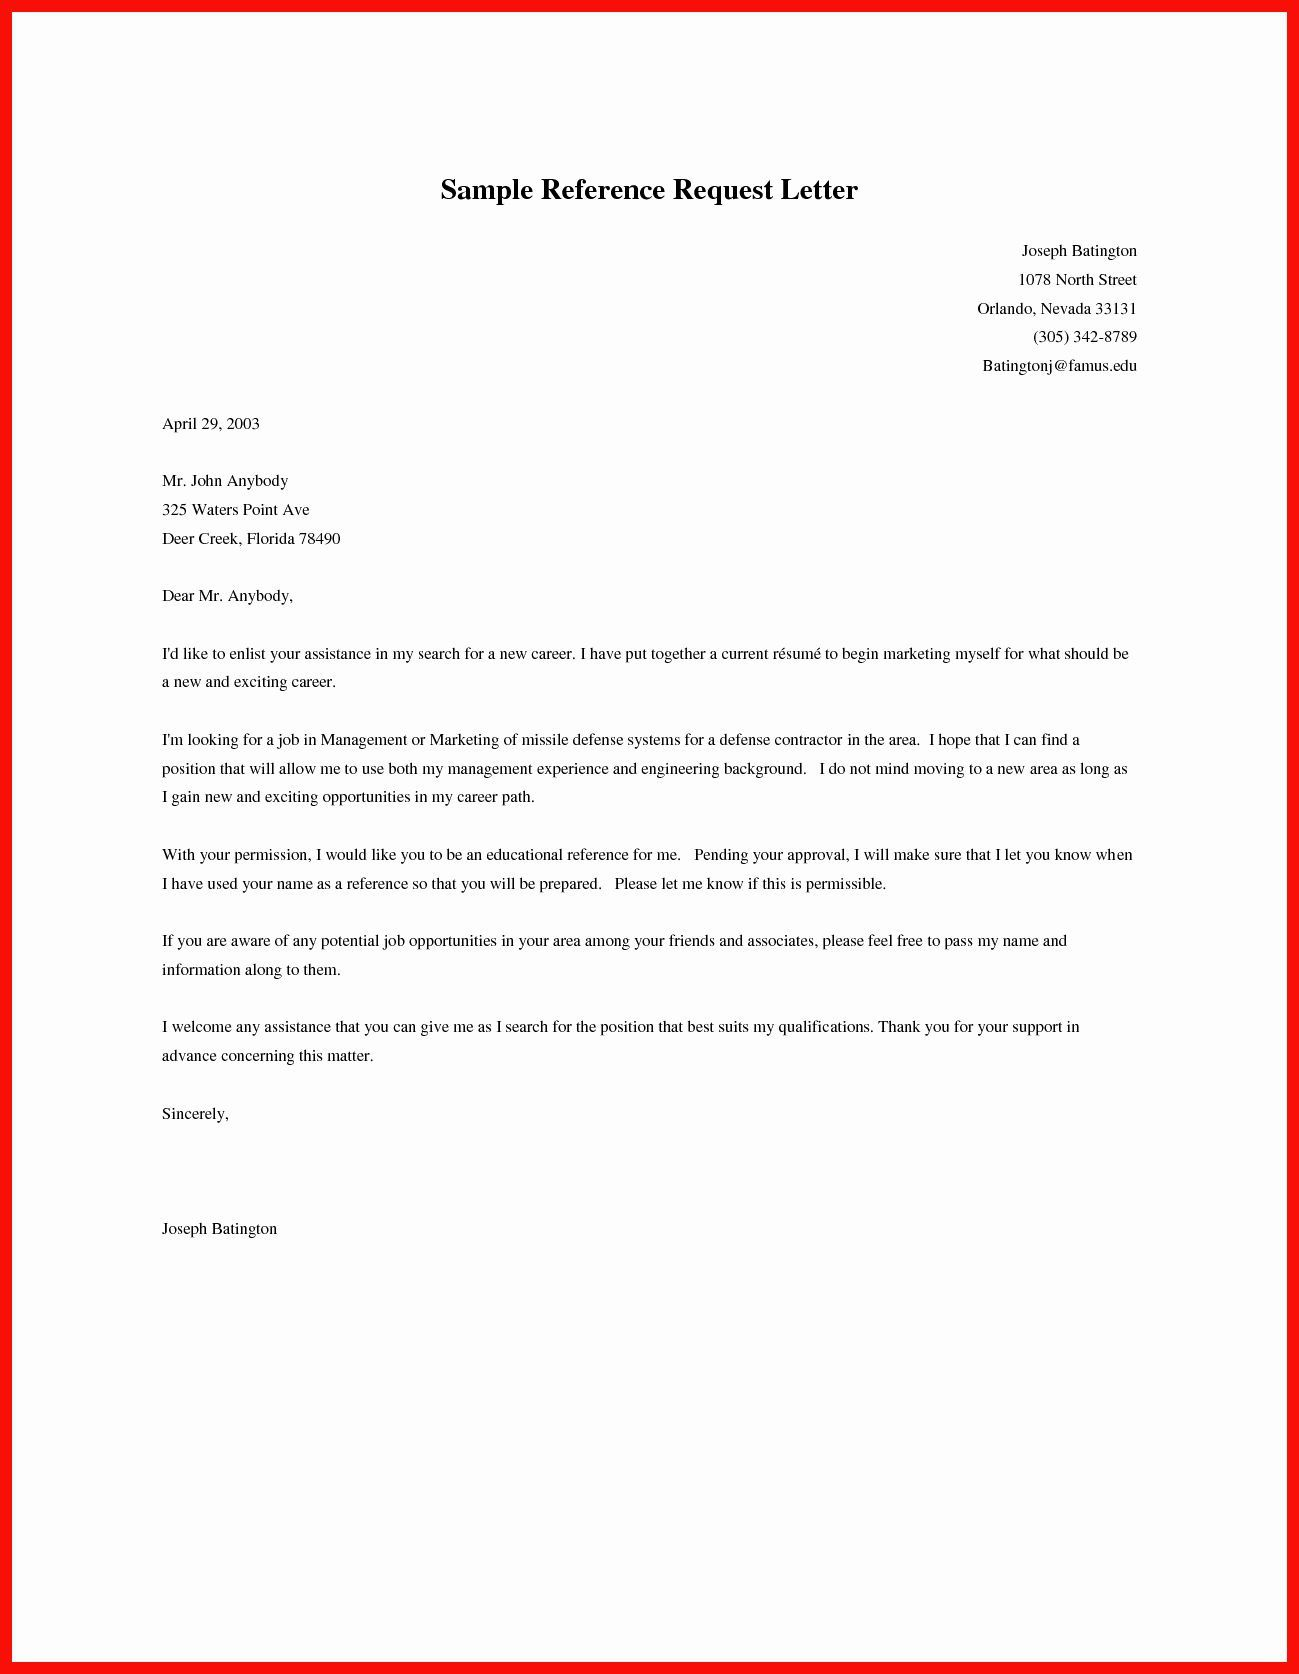 002 Top Sample Request For Letter Of Recommendation High Resolution  From Previou Employer NursingFull